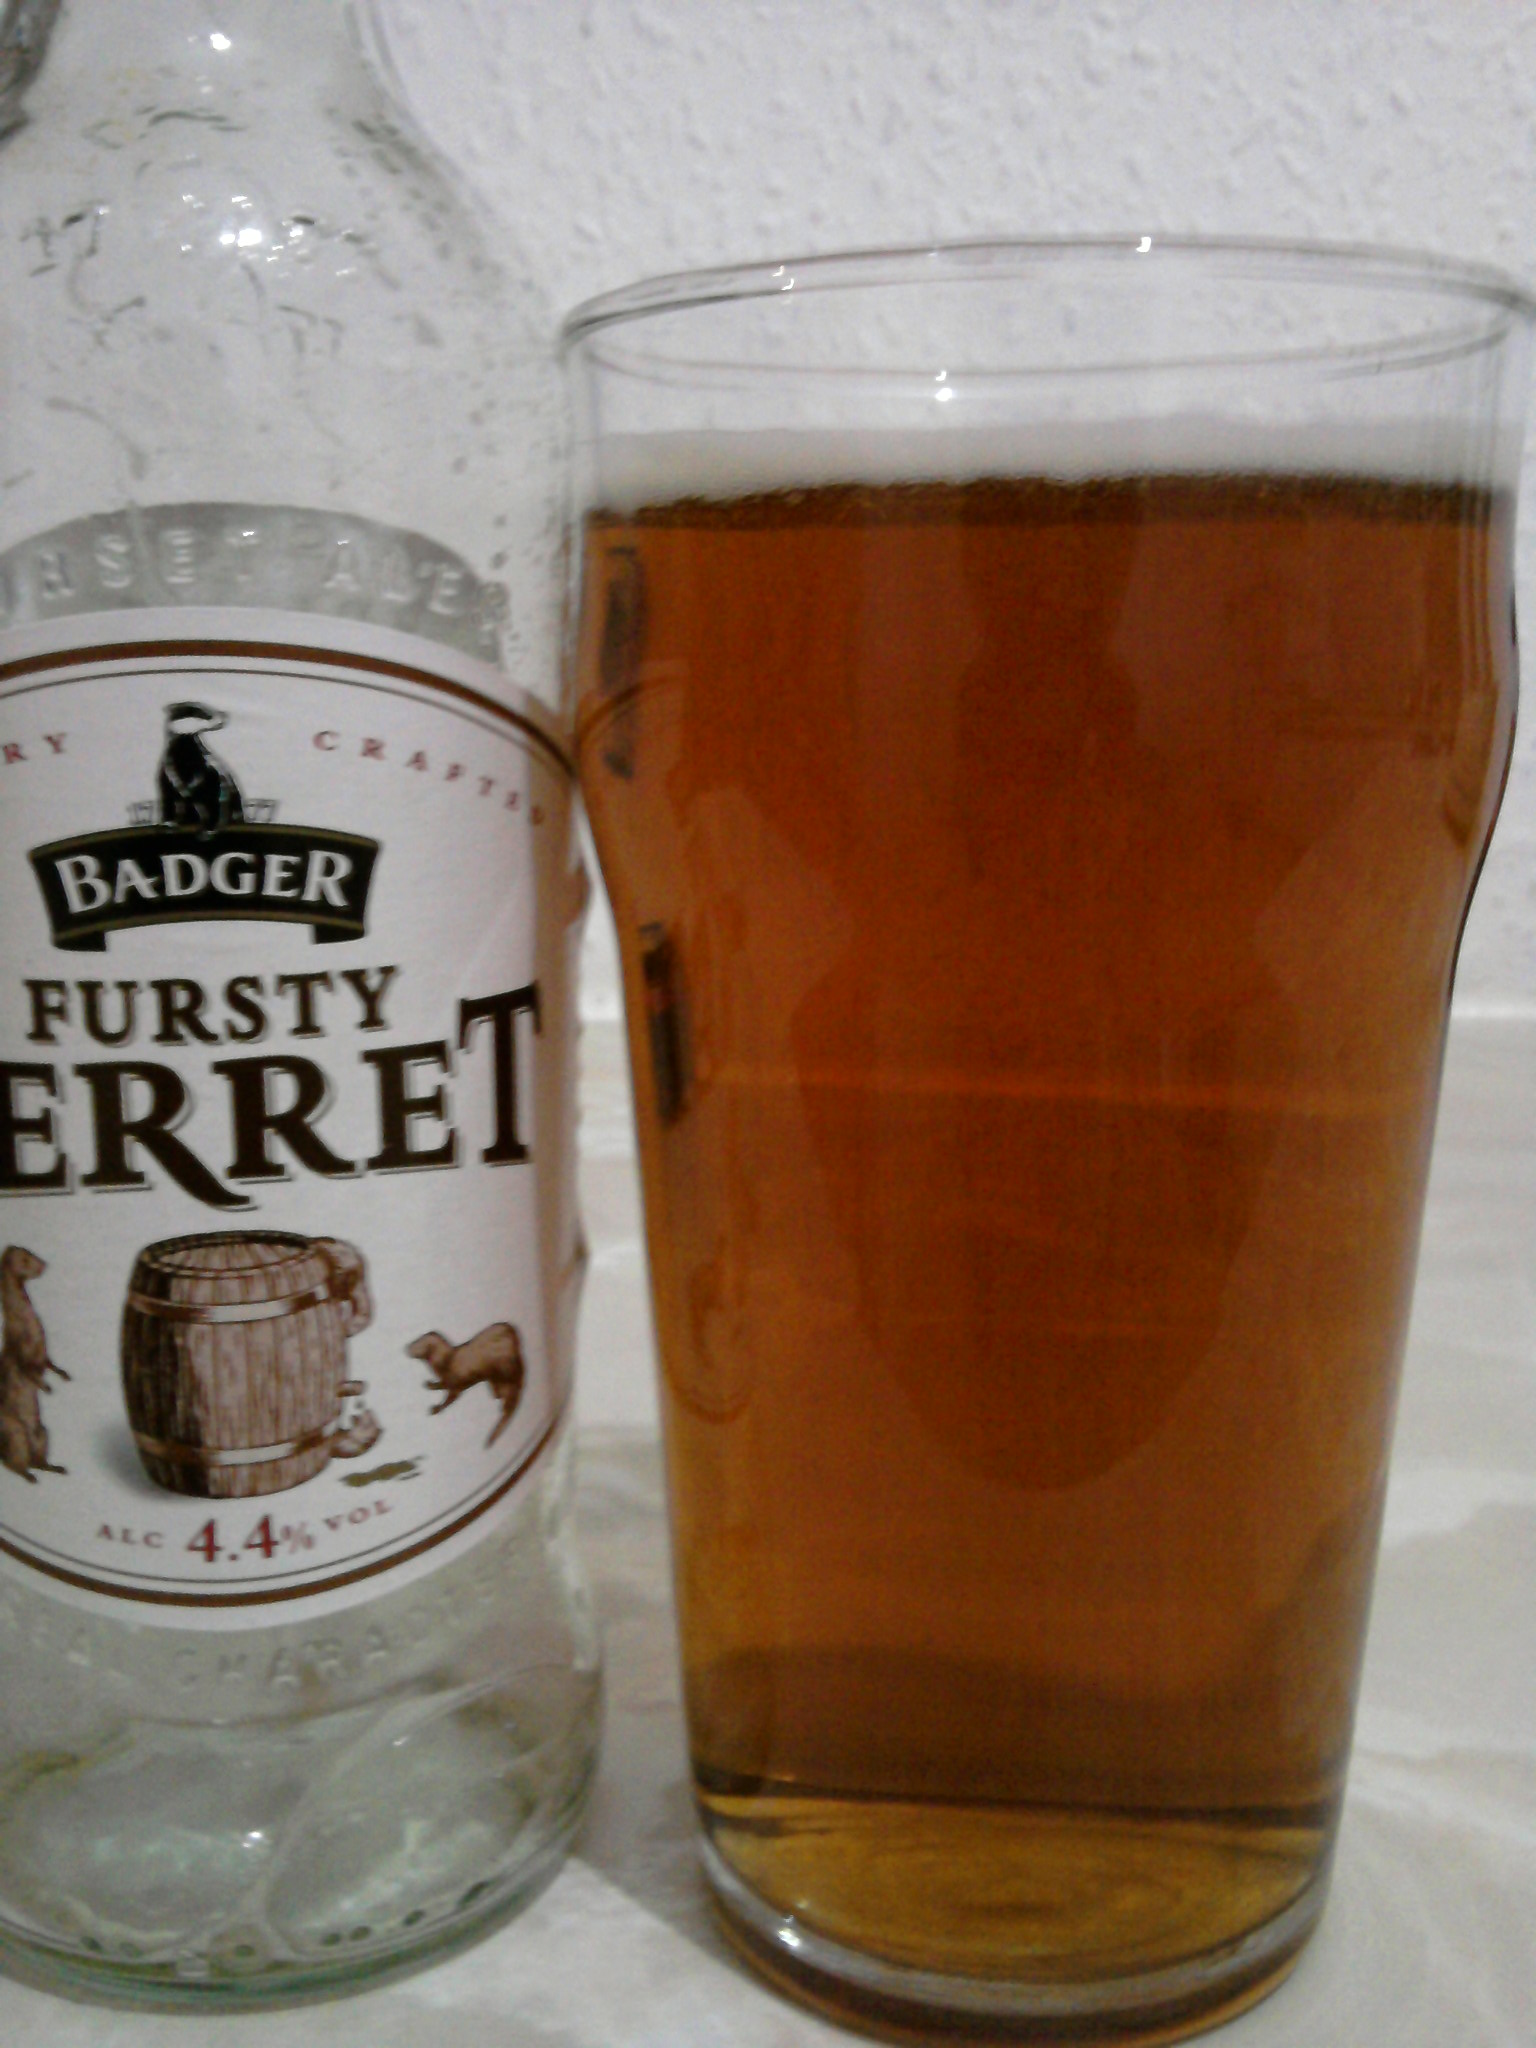 Badger Fursty Ferret poured into a glass